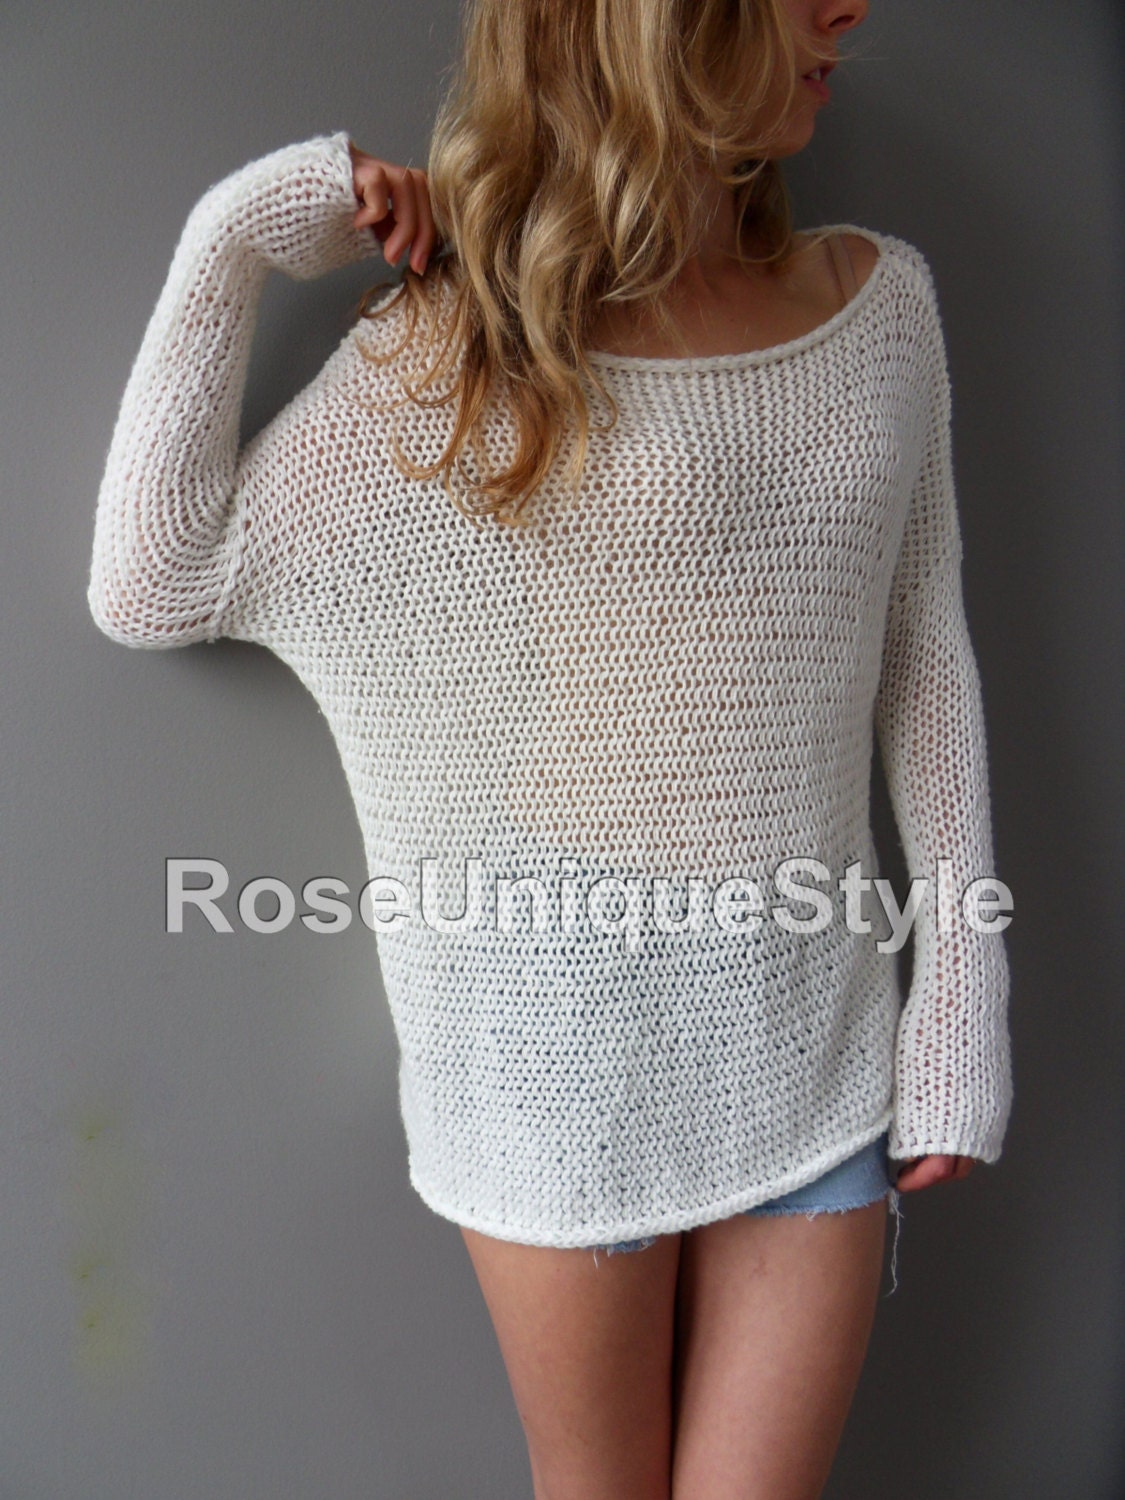 Knitting Summer Sweater : Slouchy spring summer cotton blend sweater loose knit